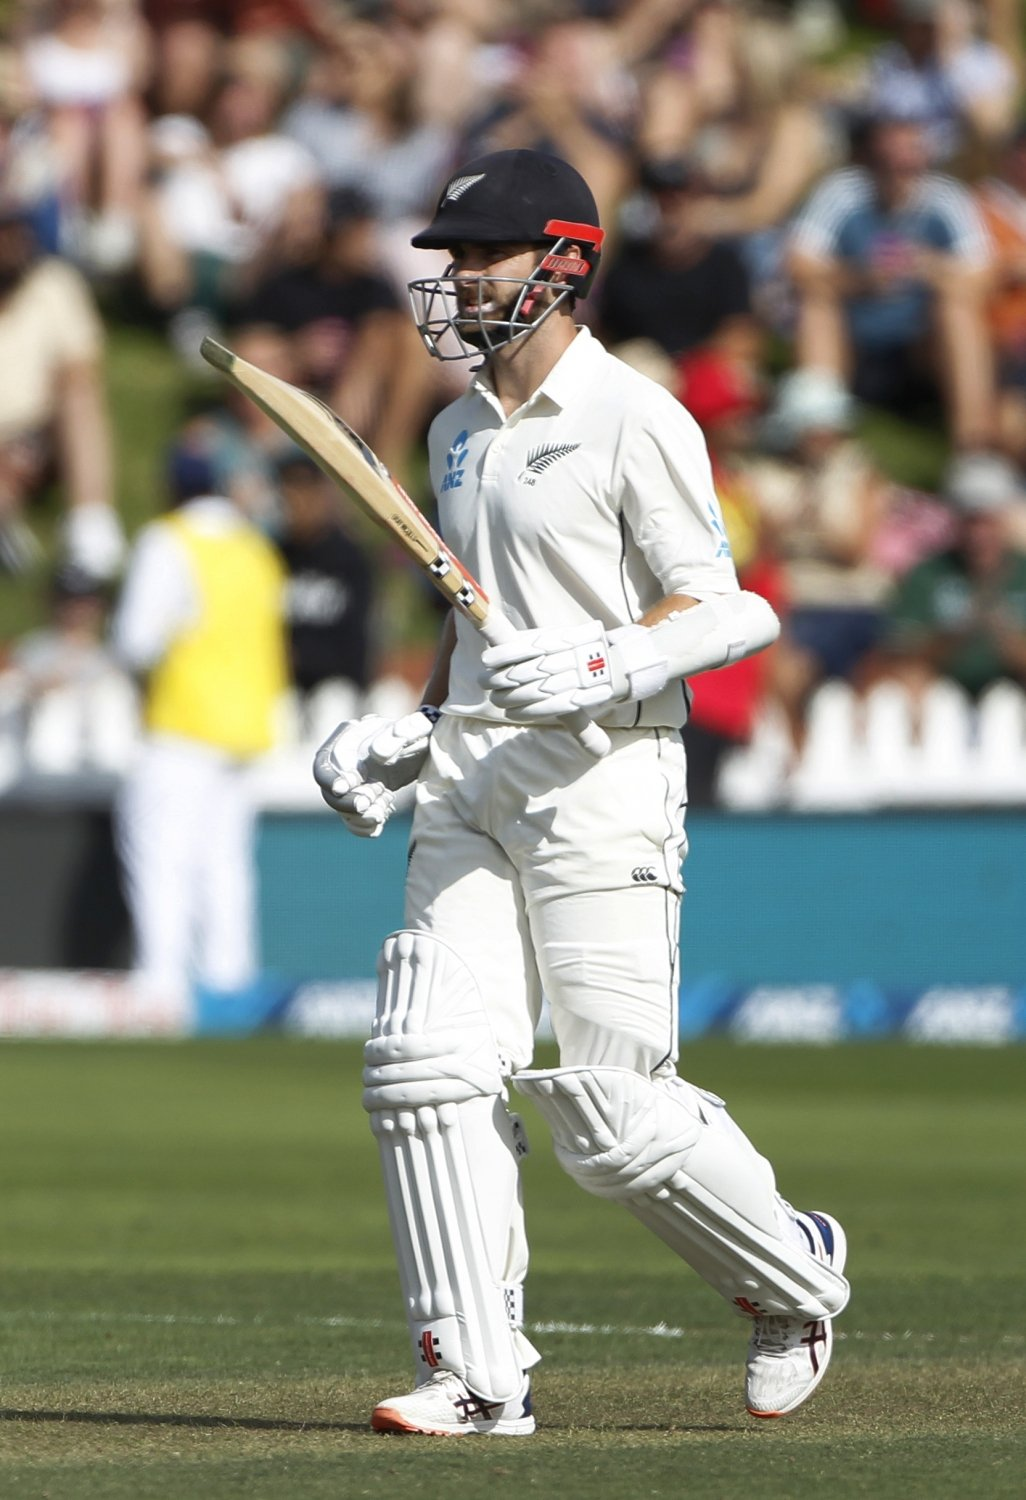 Cricket Headlines for 9 June: Williamson out of Edgbaston Test; Pakistan rejects tie-up with Indian broadcasters; more